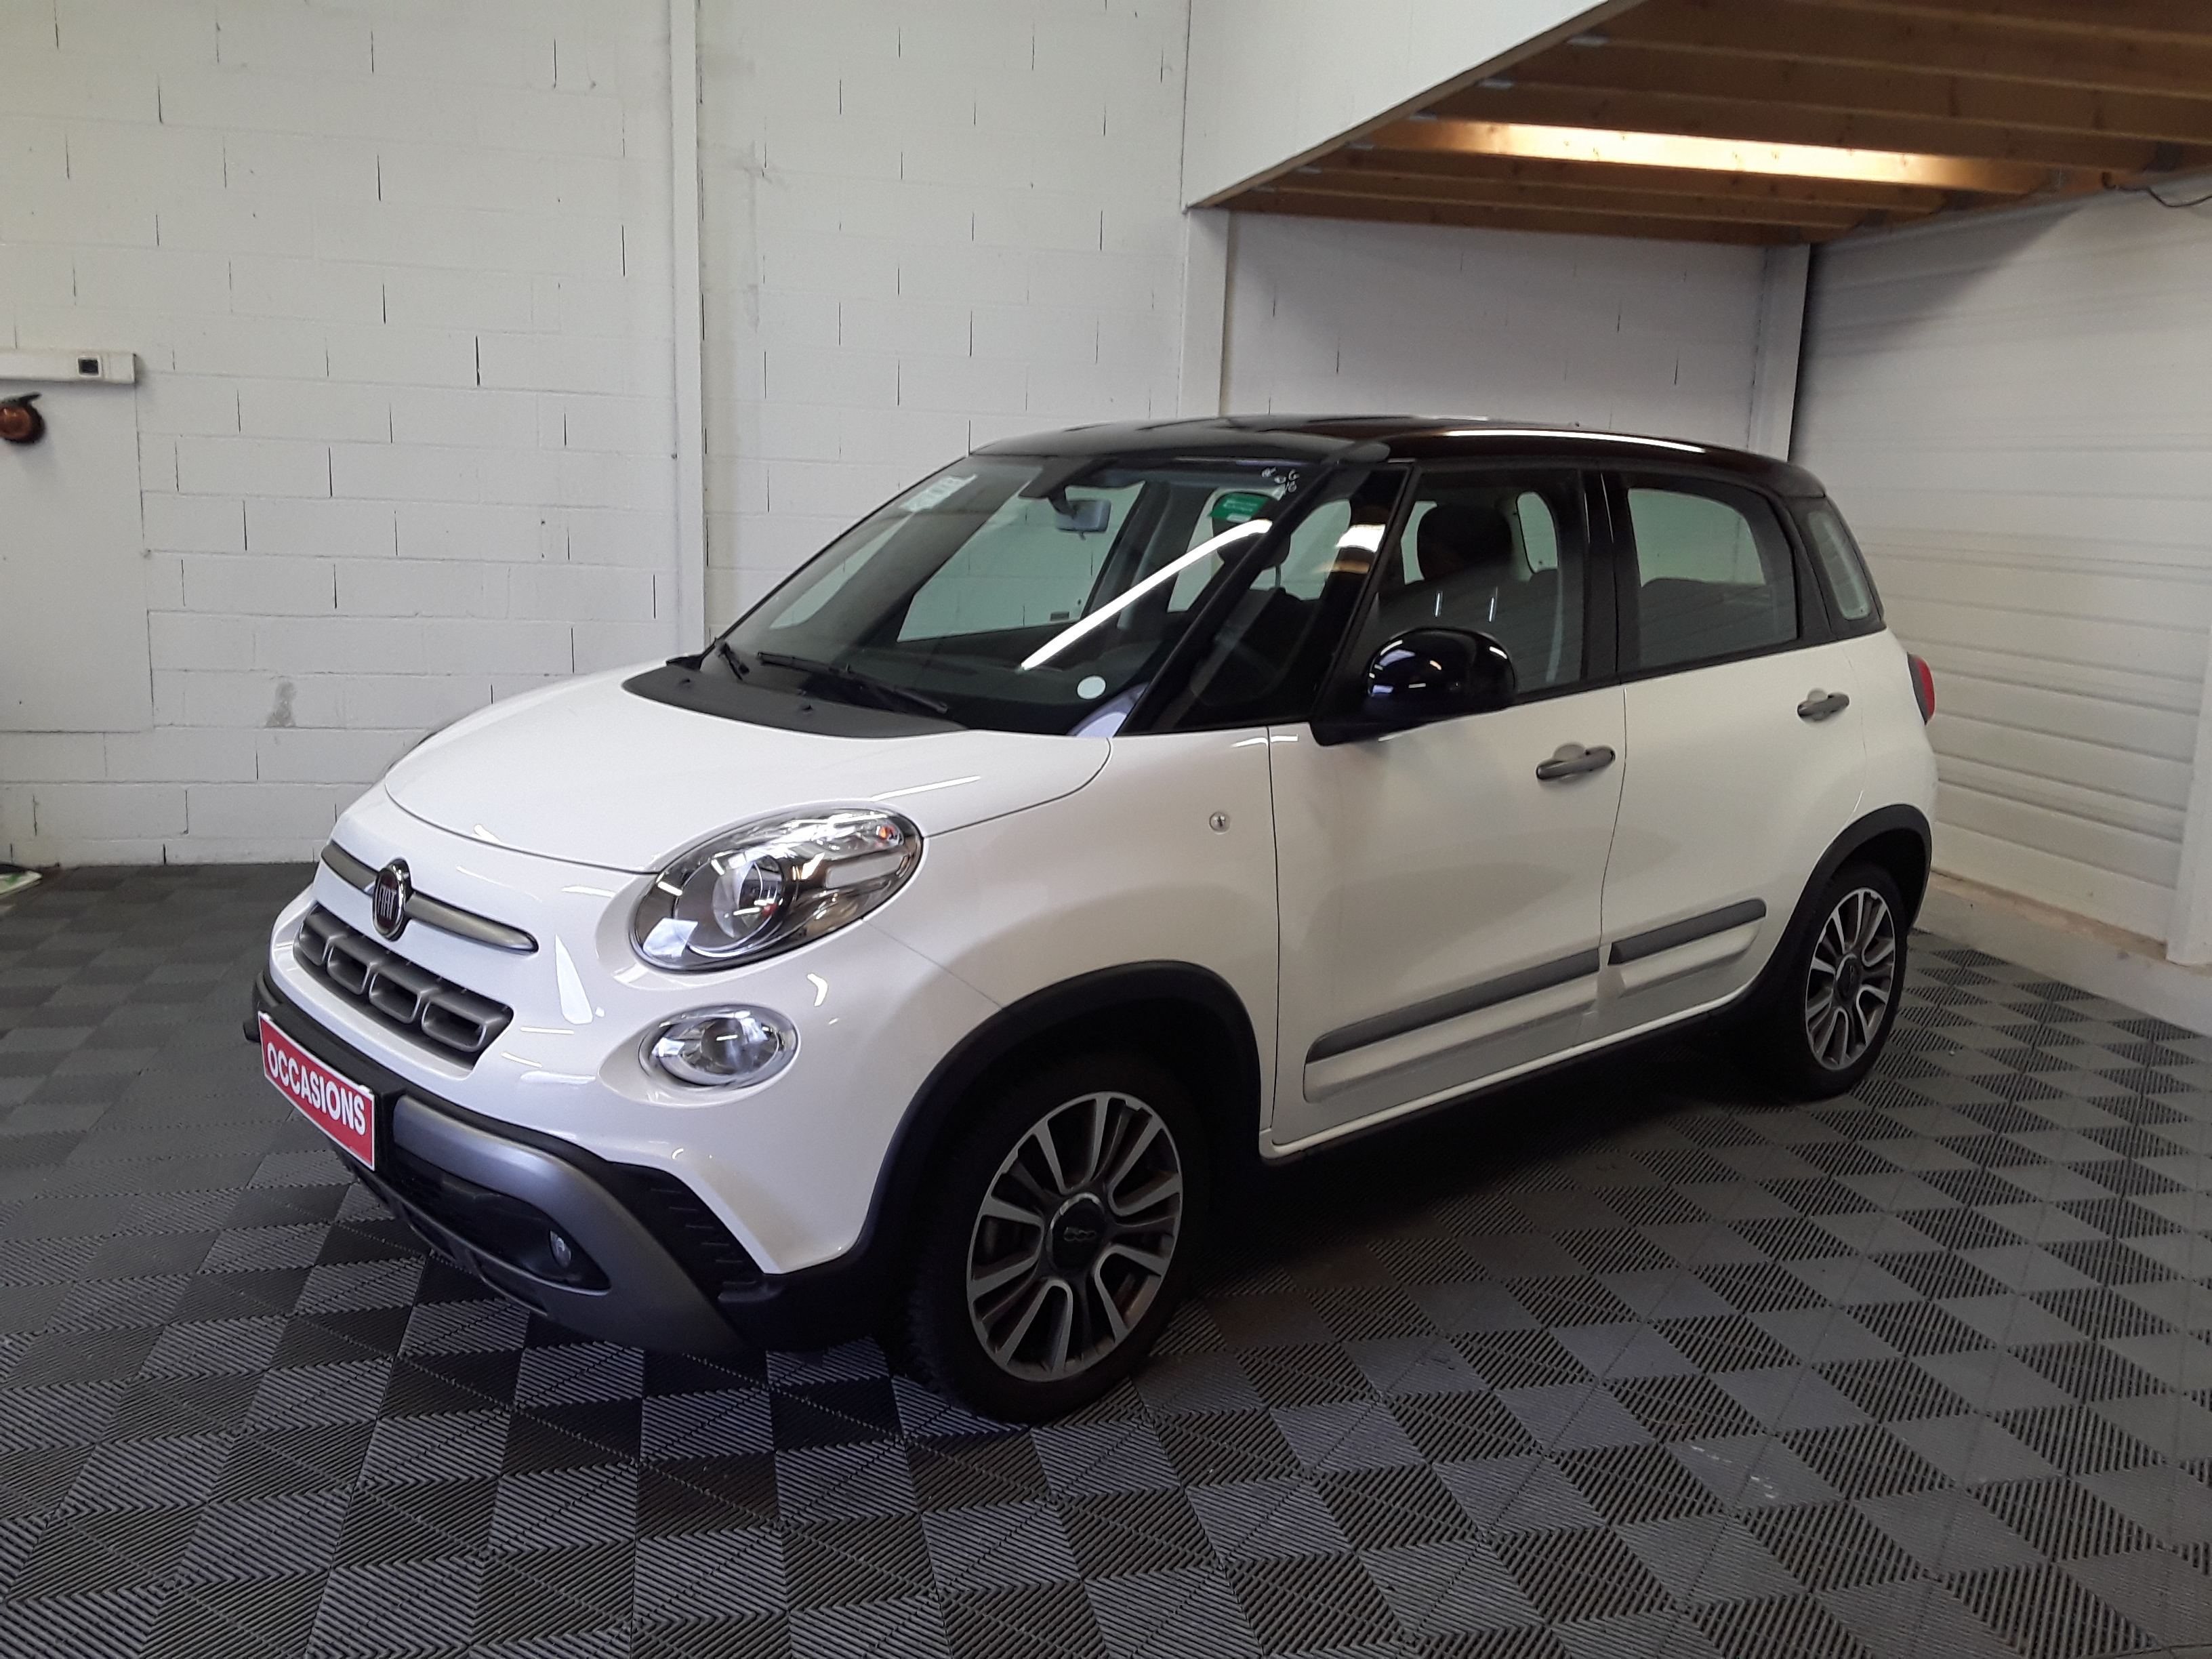 Fiat 500L hd specifications